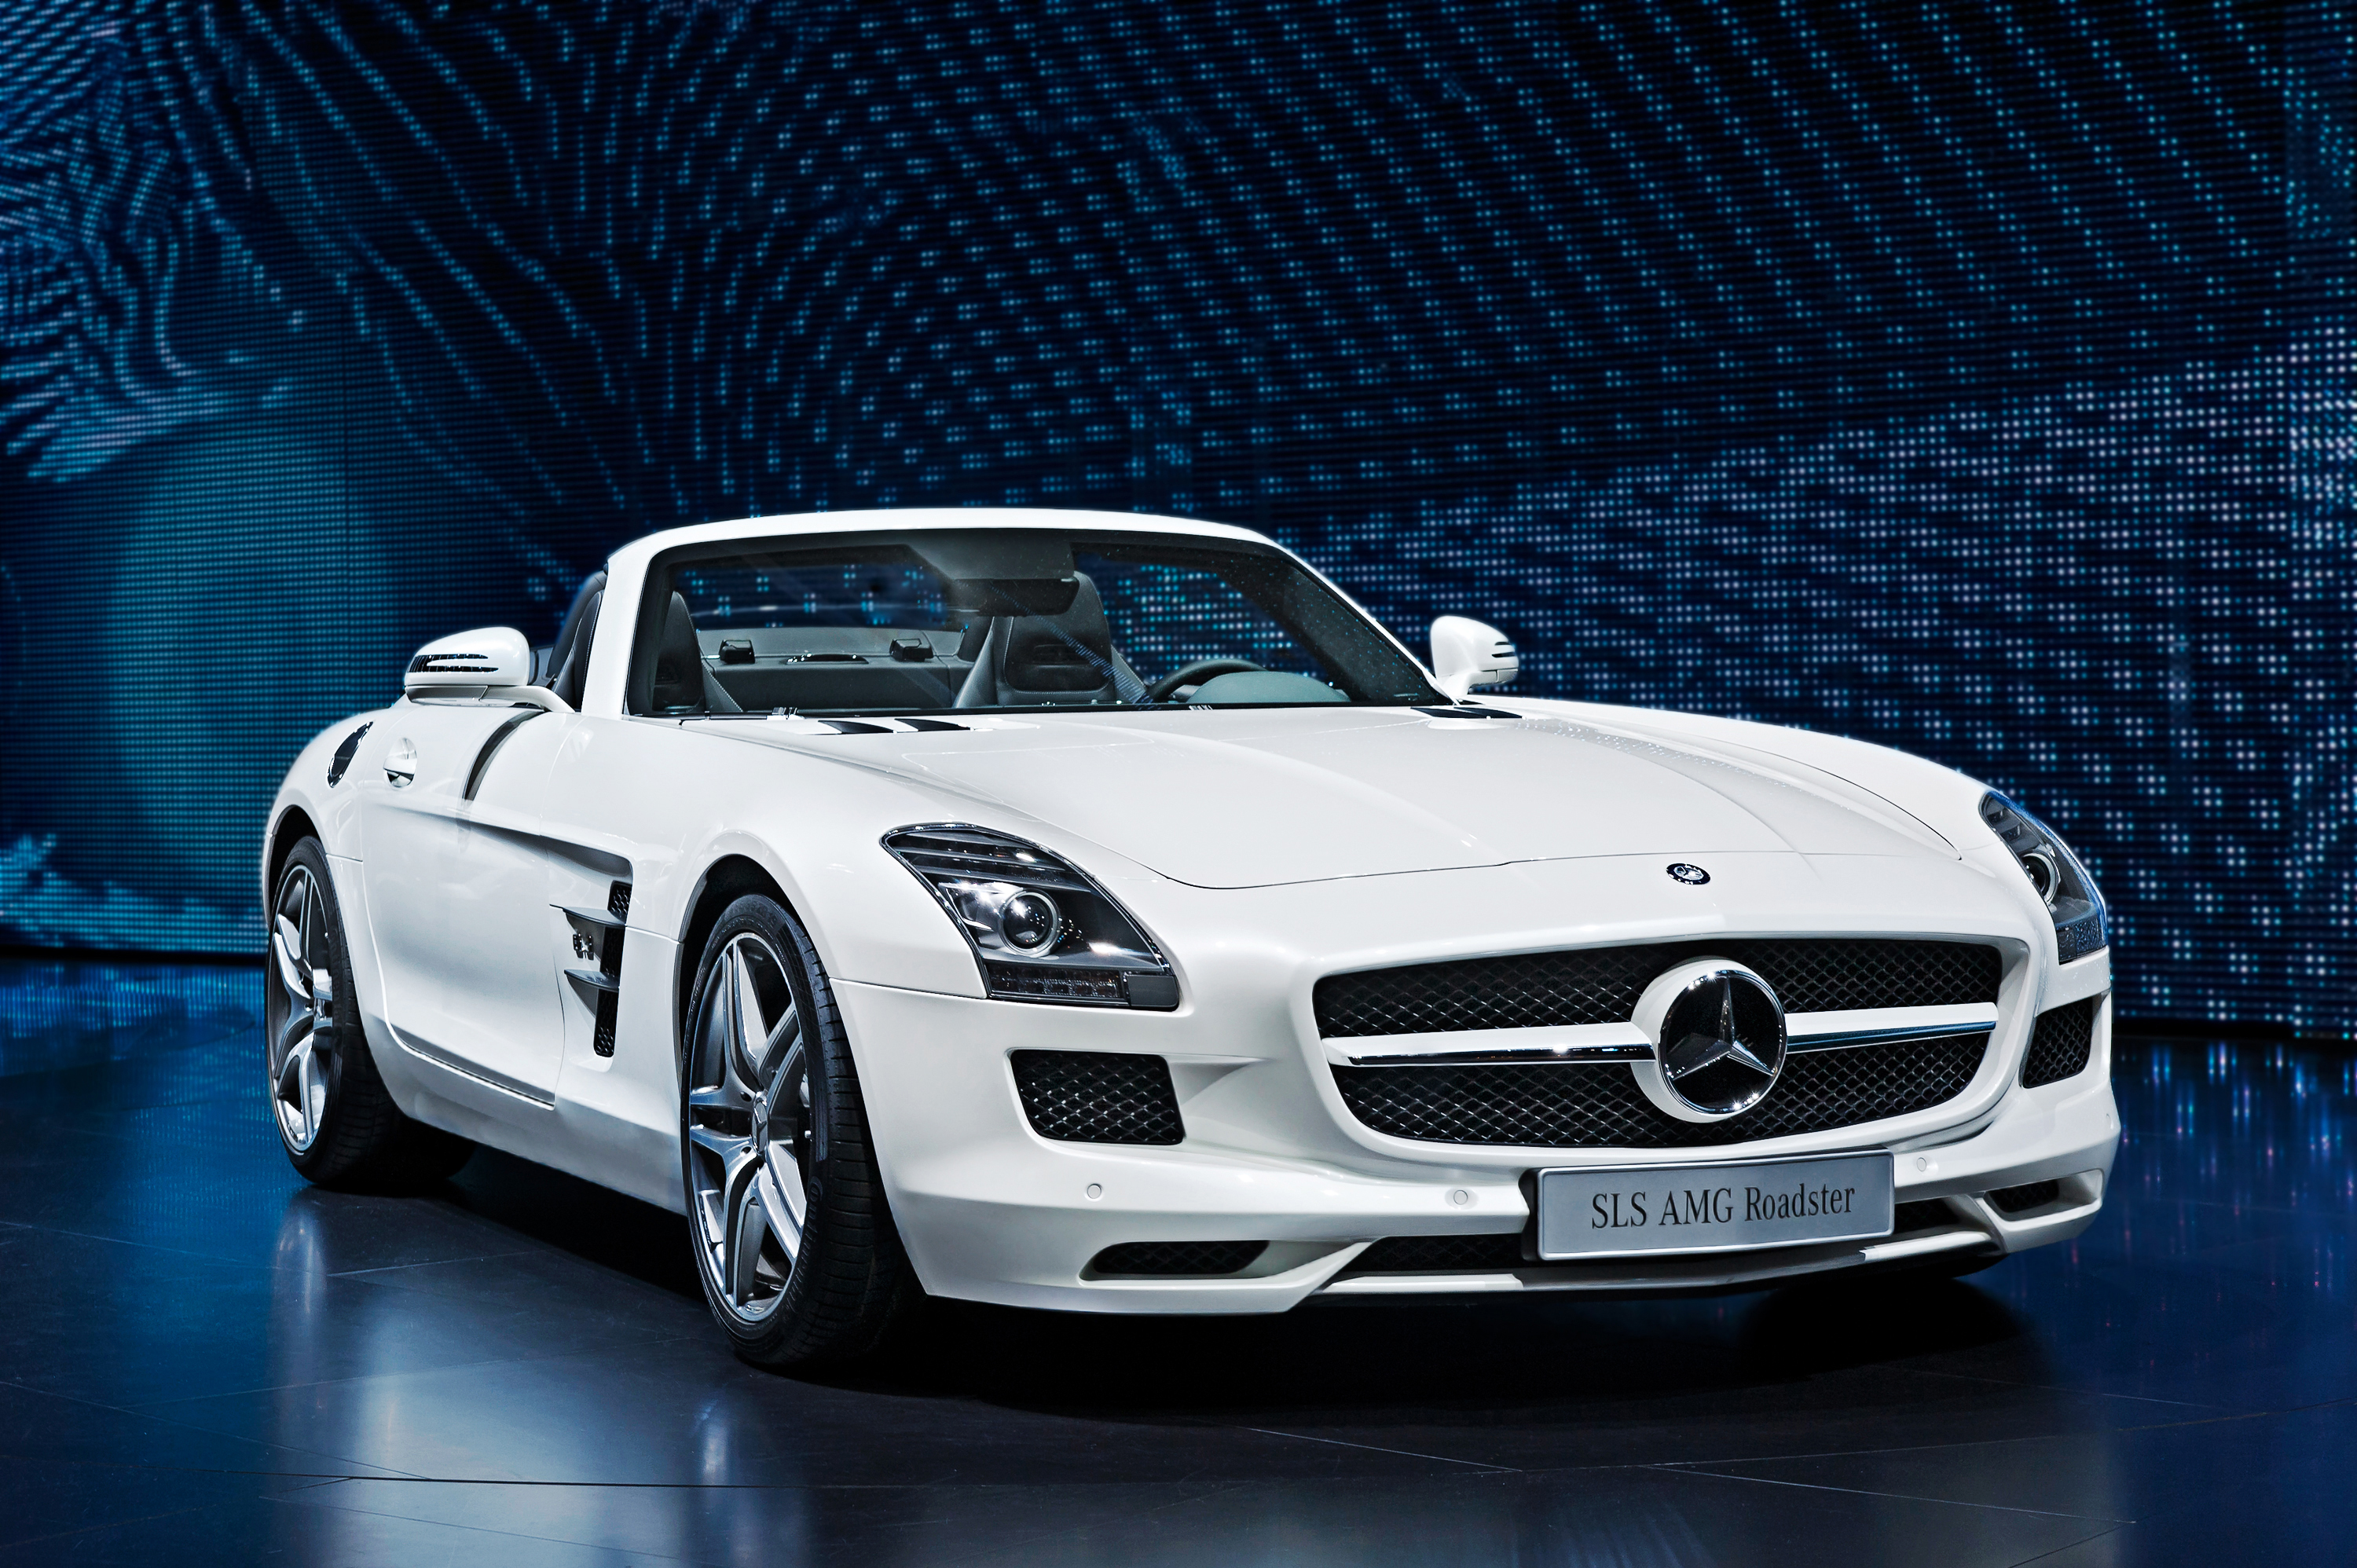 file sls amg wikipedia. Black Bedroom Furniture Sets. Home Design Ideas